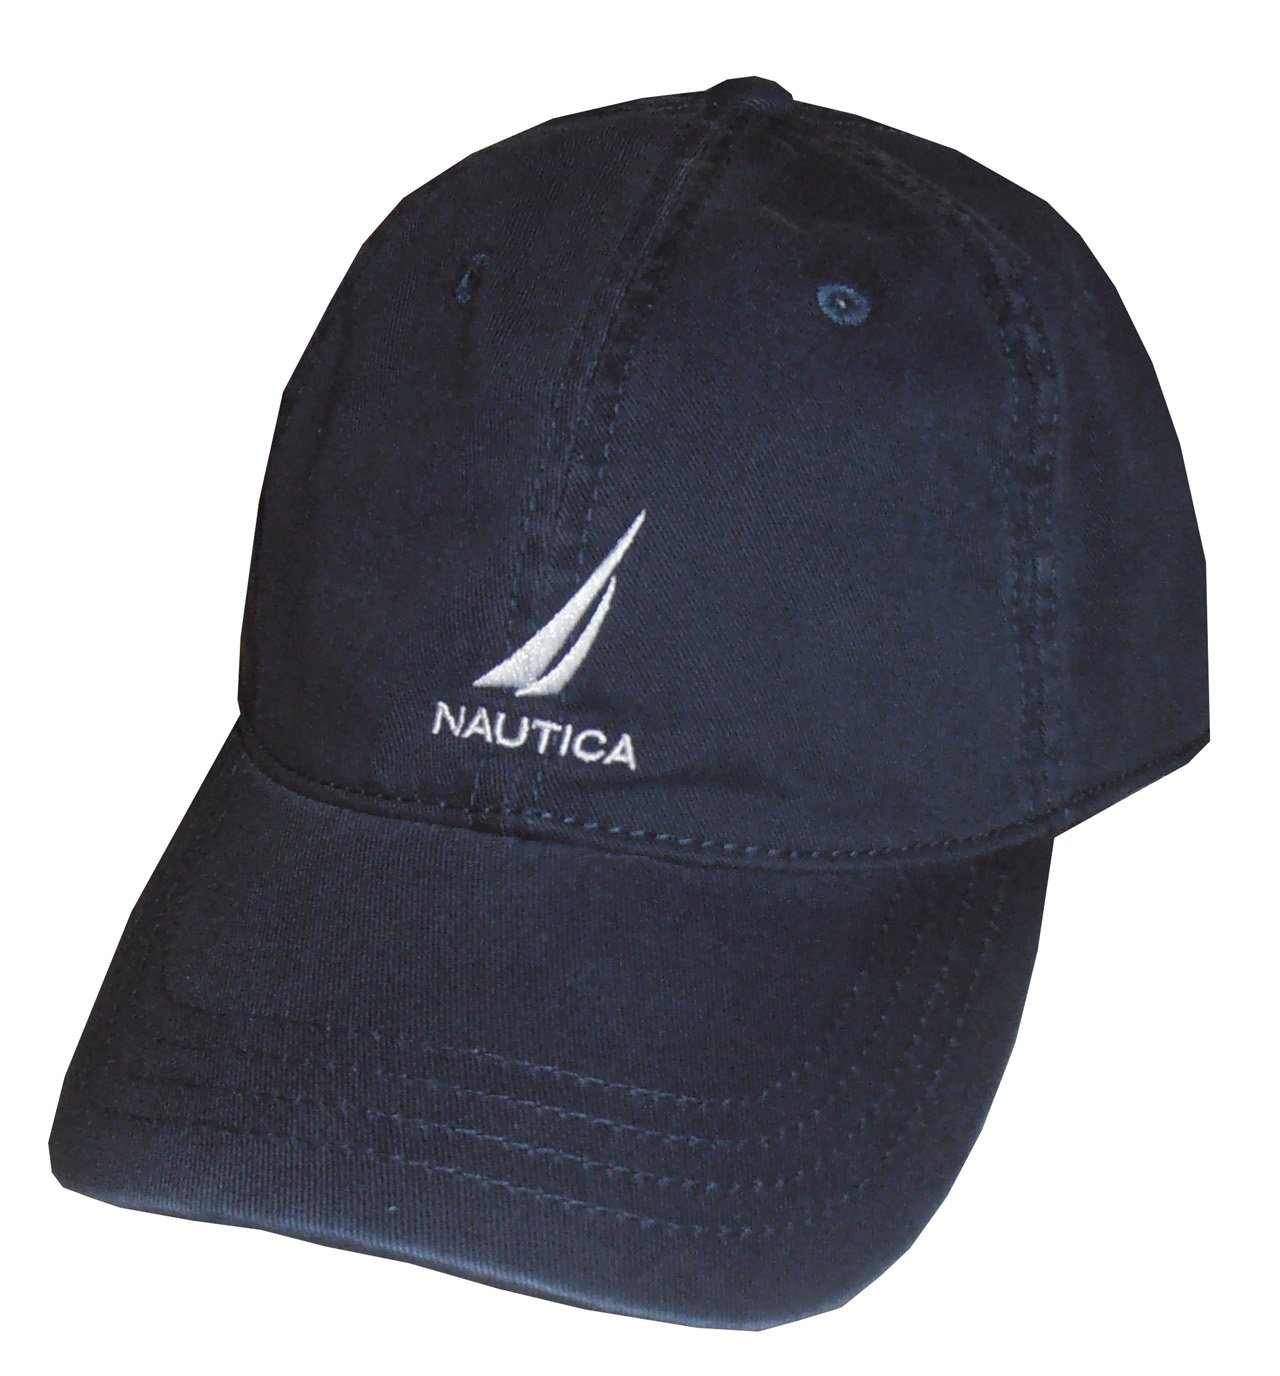 Nautica Gorra Ajustable con Logo para Hombre - HR8401, Adjustable ...